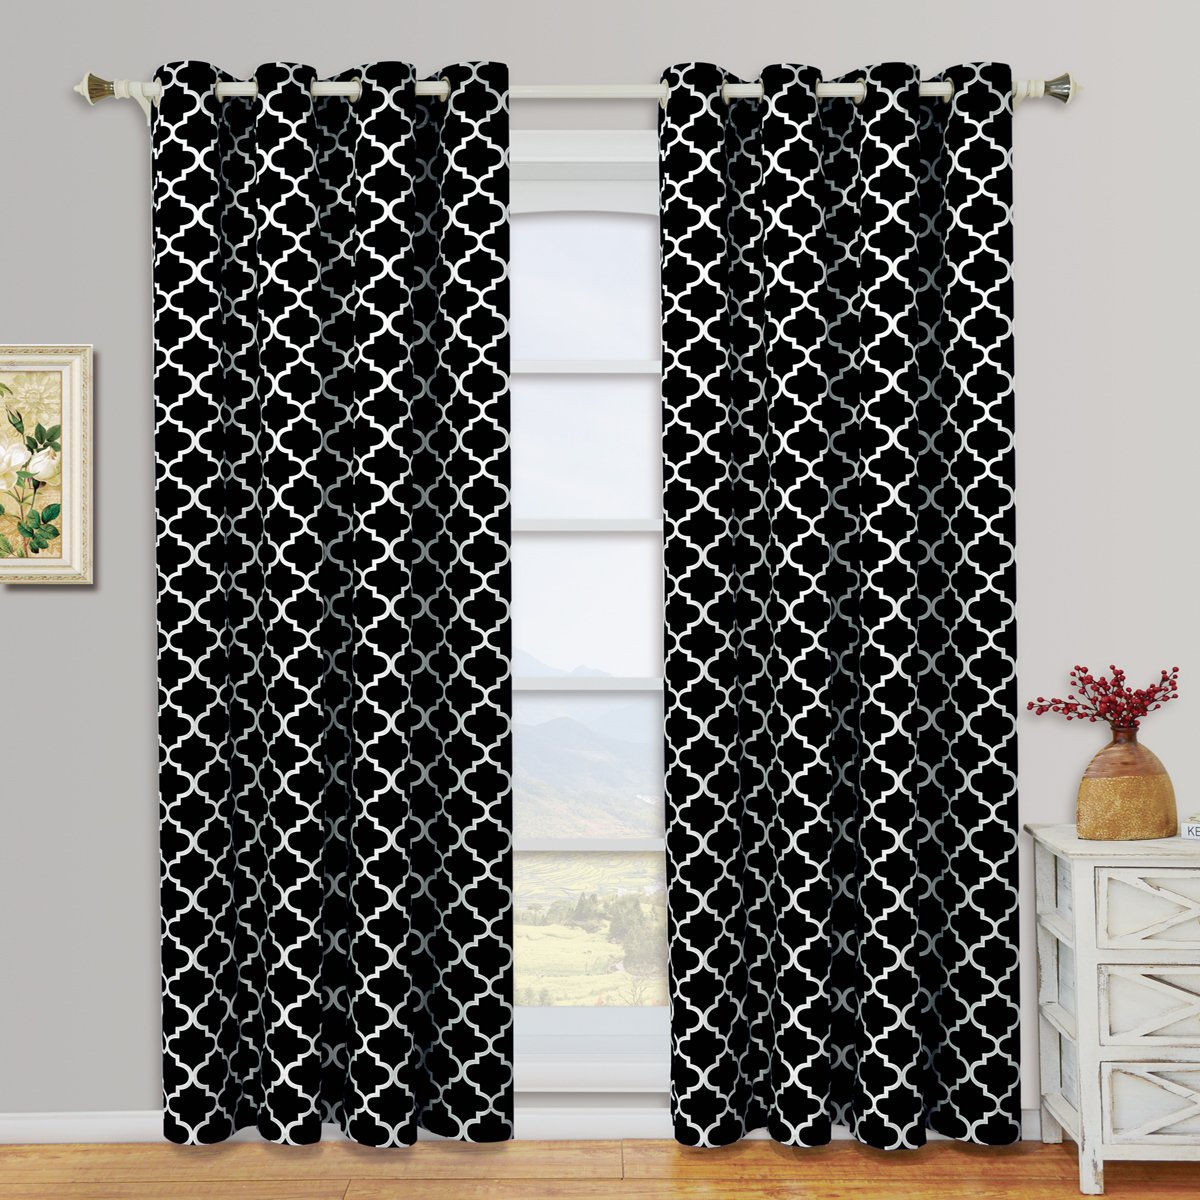 Meridian Black Grommet Blackout Window Curtain Drapes, Pair / Set of 2 Panels, 52x63 inches Each, by Royal Hotel